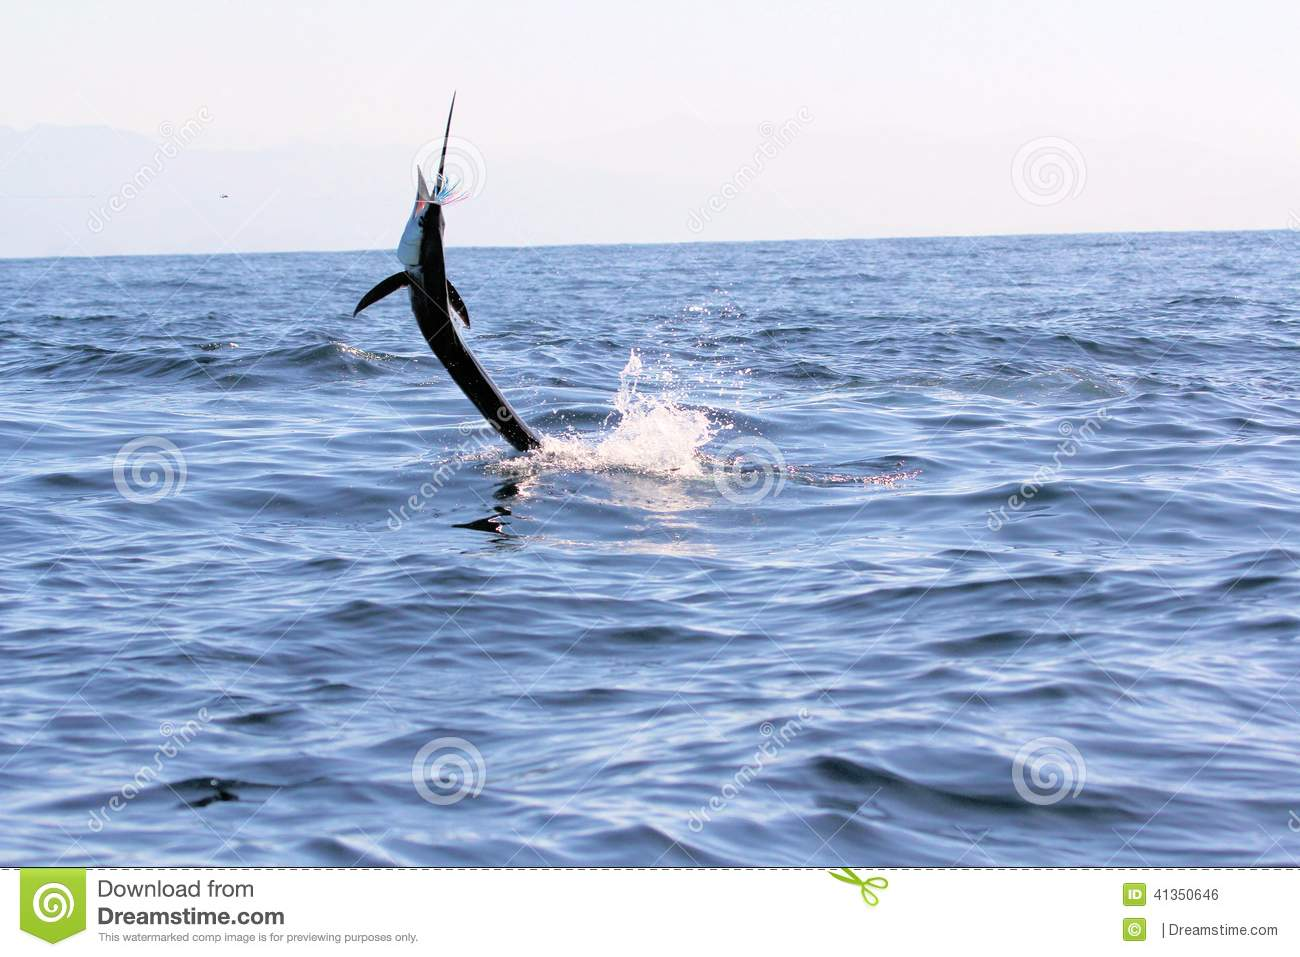 Swordfish Sailfish jumping out of the water